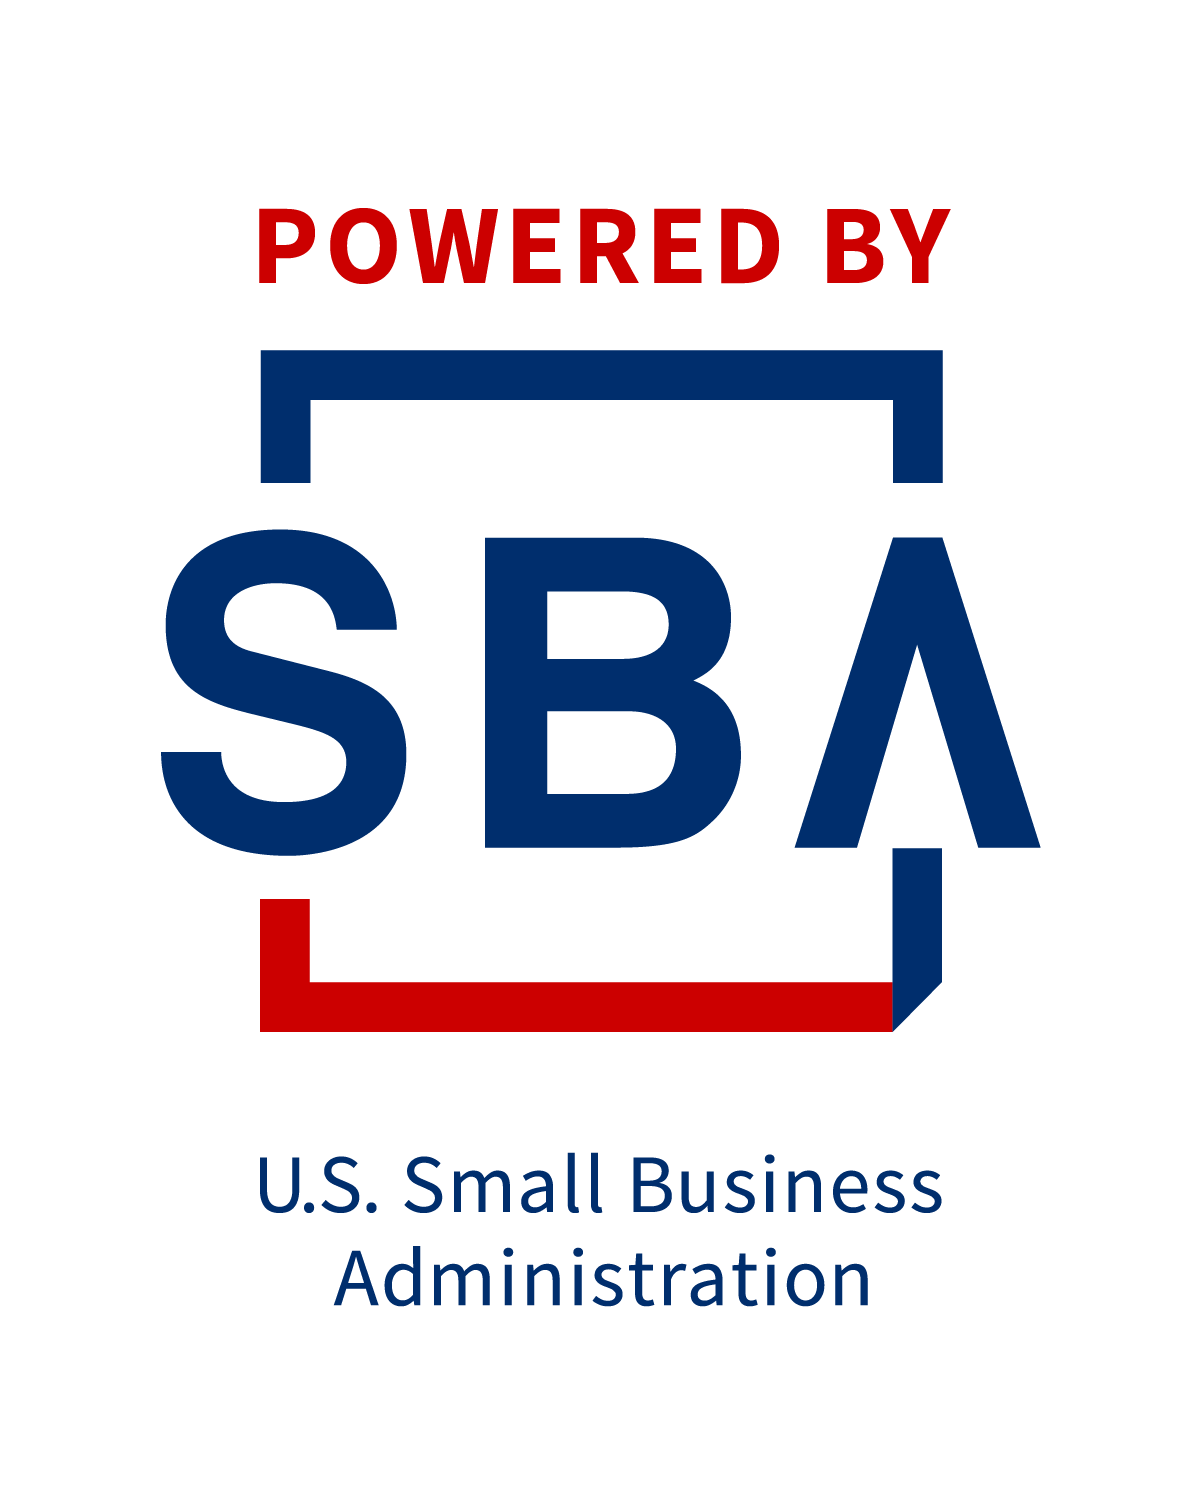 Powered by SBA U.S. Small Business Administration